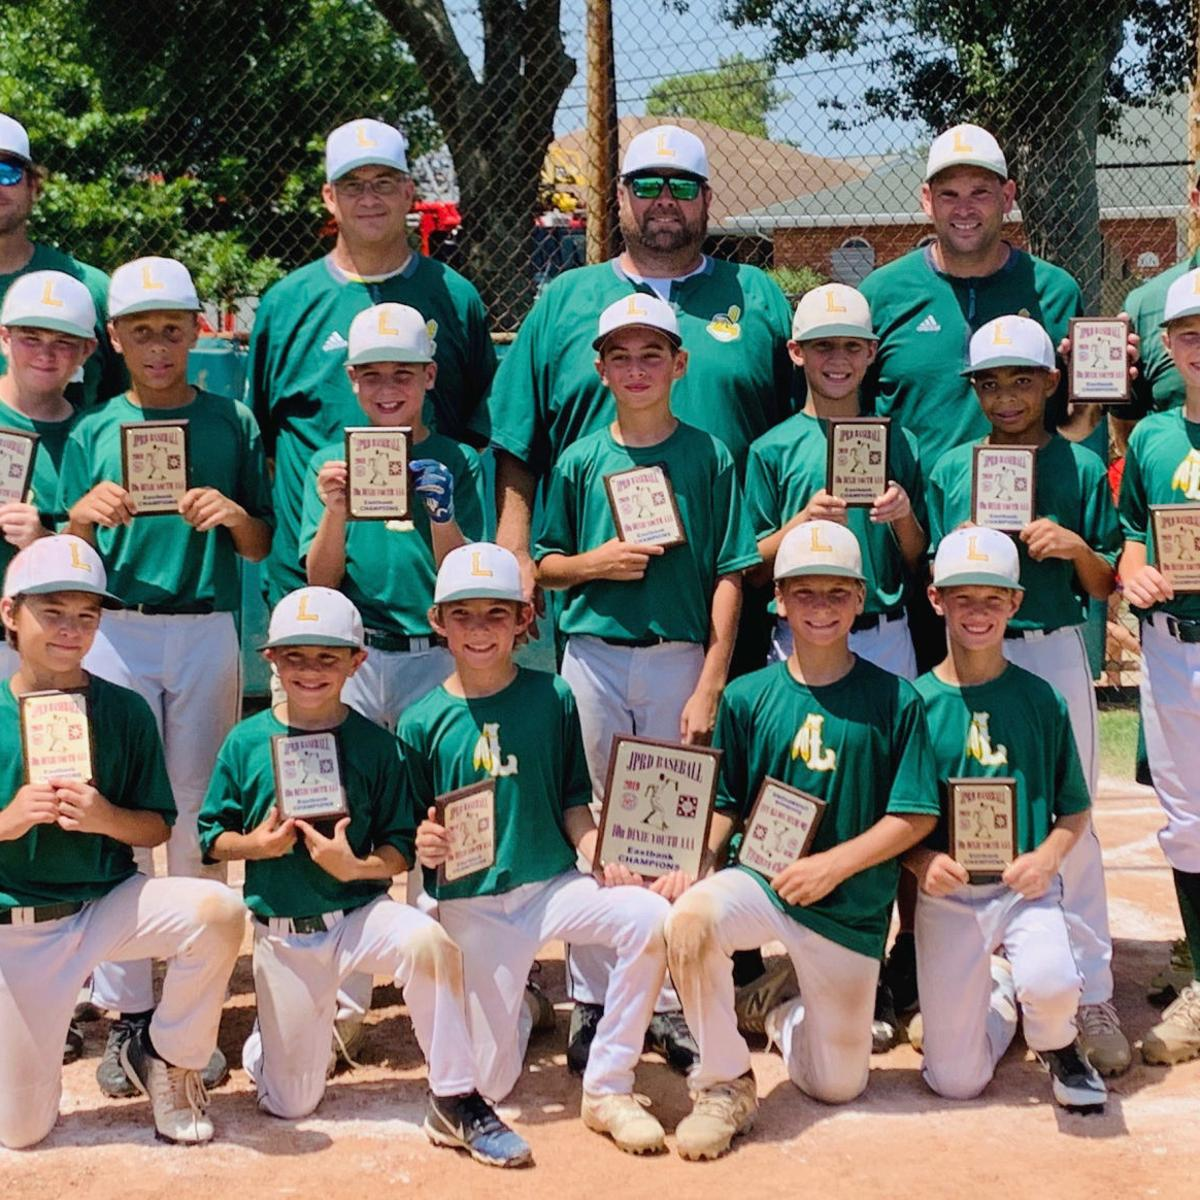 Lakeshore 9-10 Dixie Youth Baseball team wins second